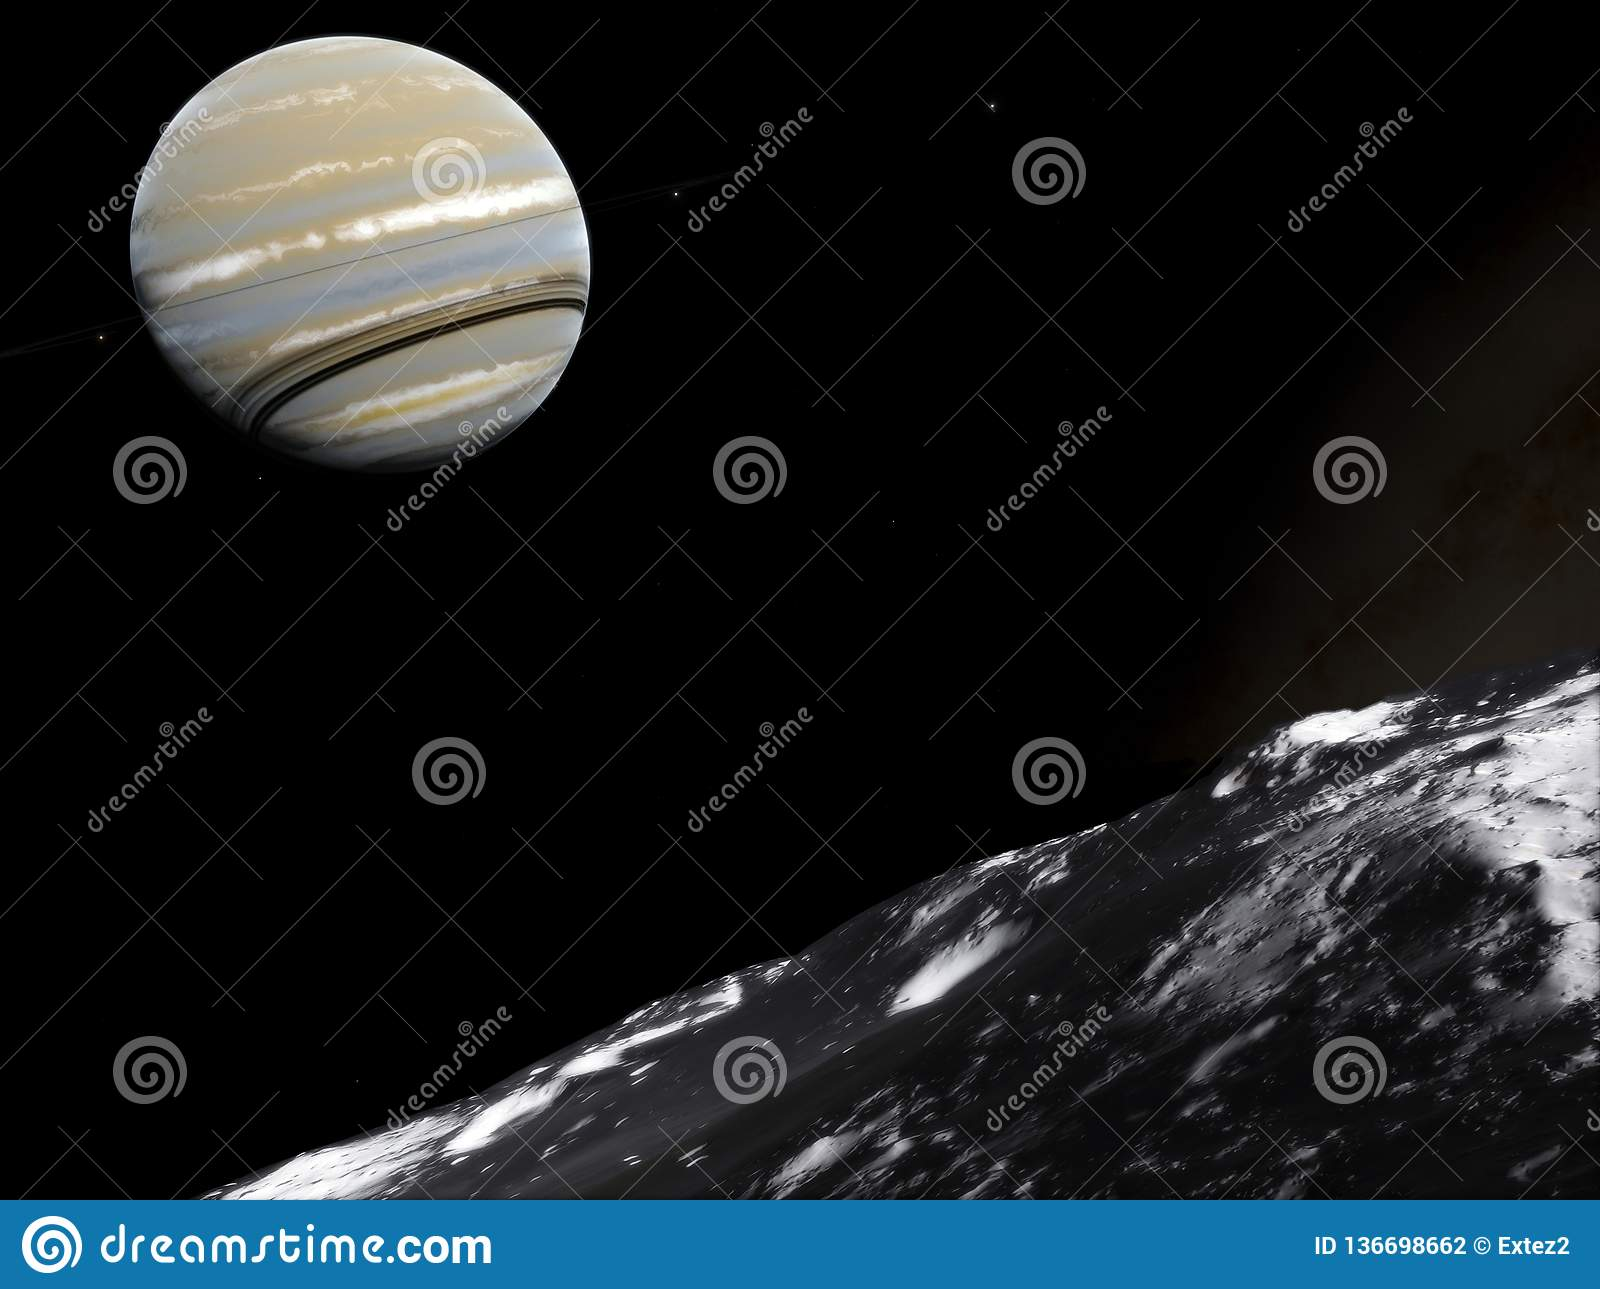 Saturn. Science fiction space wallpaper, incredibly beautiful planets, galaxies, dark and cold beauty of endless